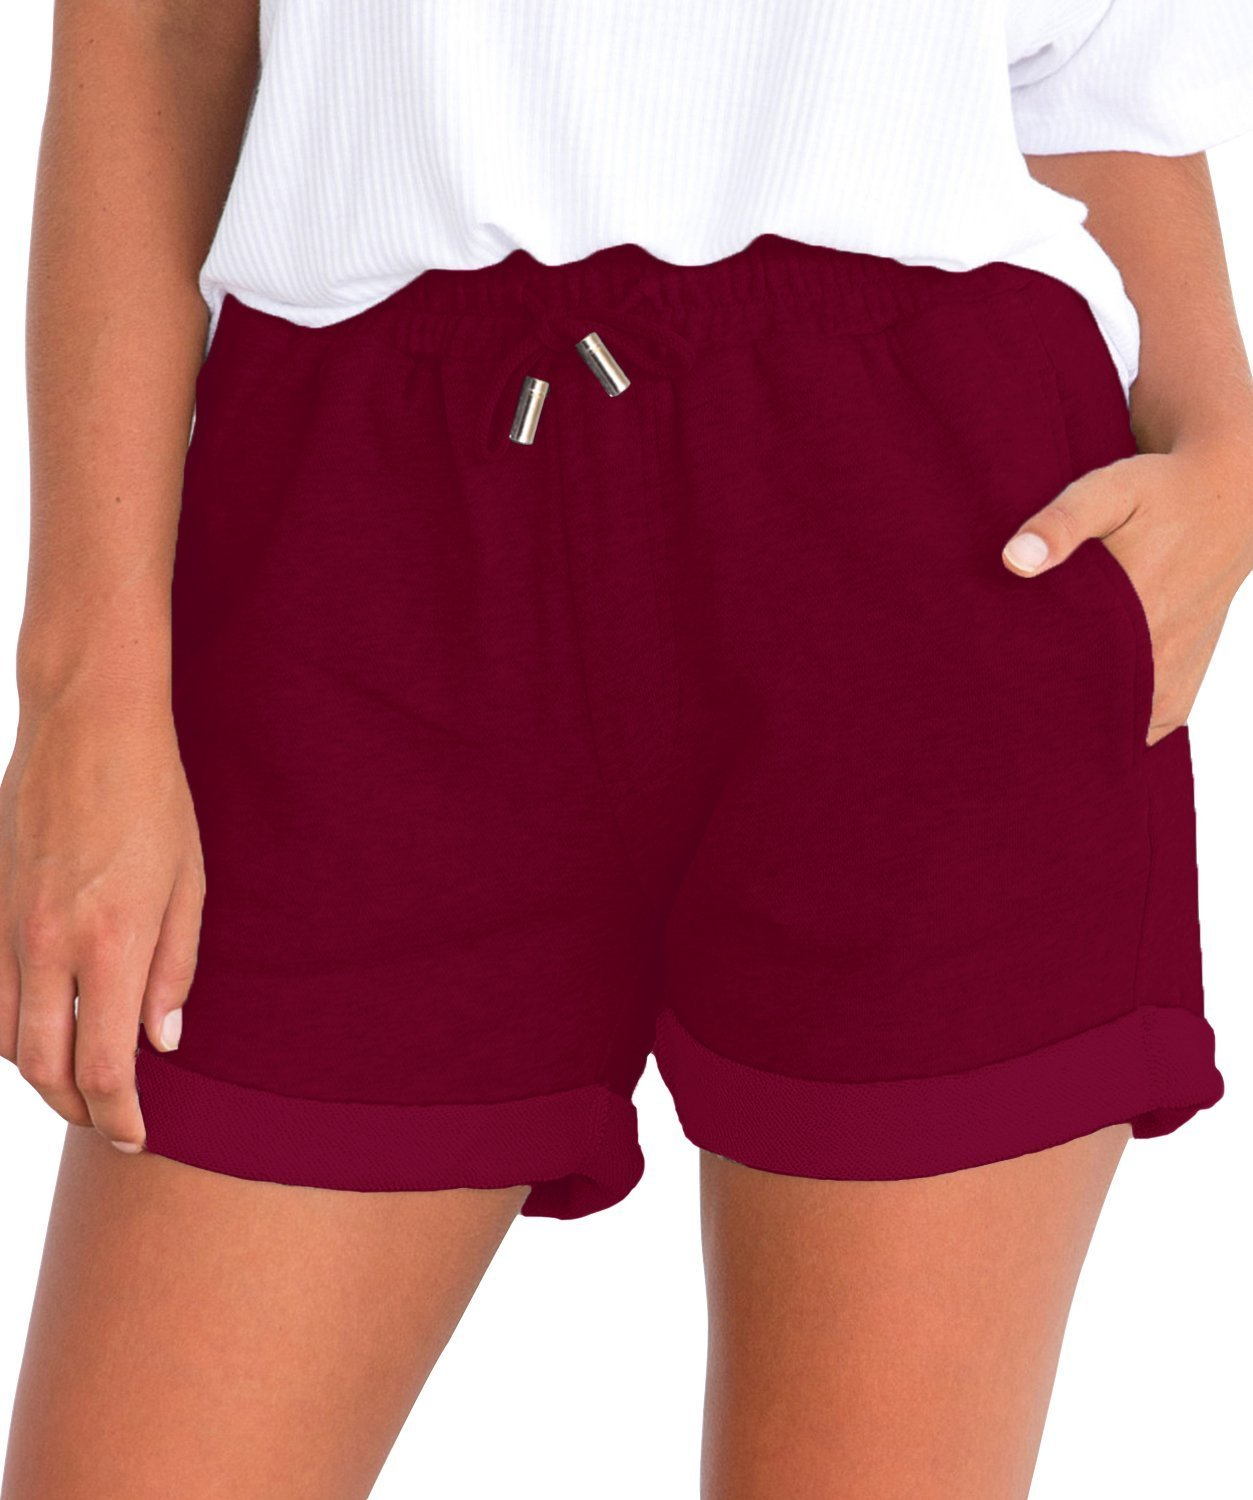 Tengo Women Summer Beach Shorts Juniors Folded Hem Shorts with Drawstring(Burgundy,L)